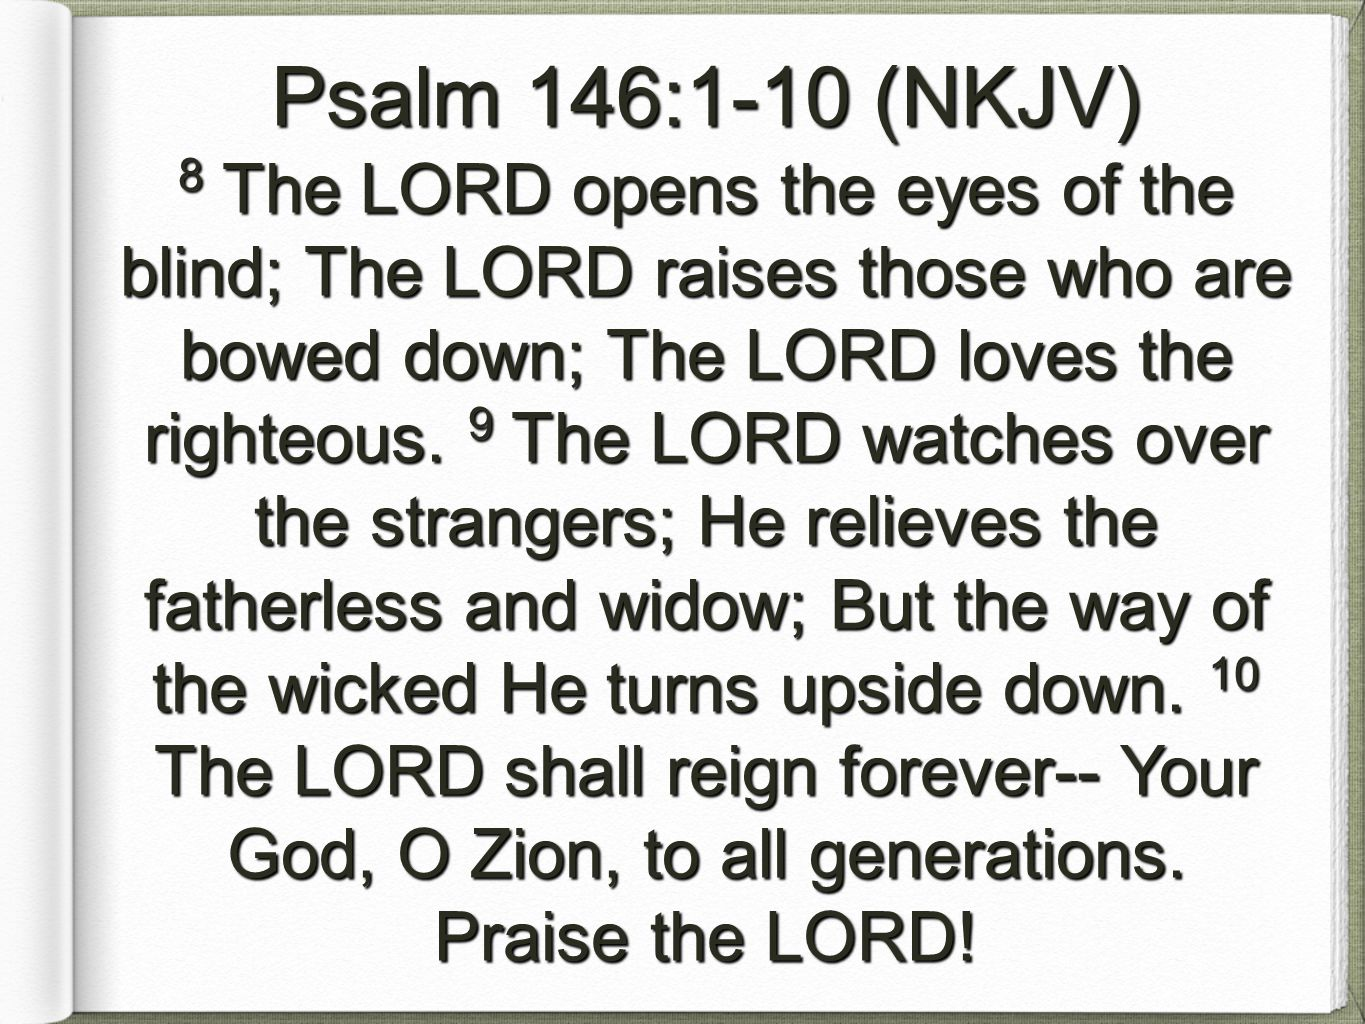 Psalm 146:1-10 (NKJV) 8 The LORD opens the eyes of the blind; The LORD raises those who are bowed down; The LORD loves the righteous.